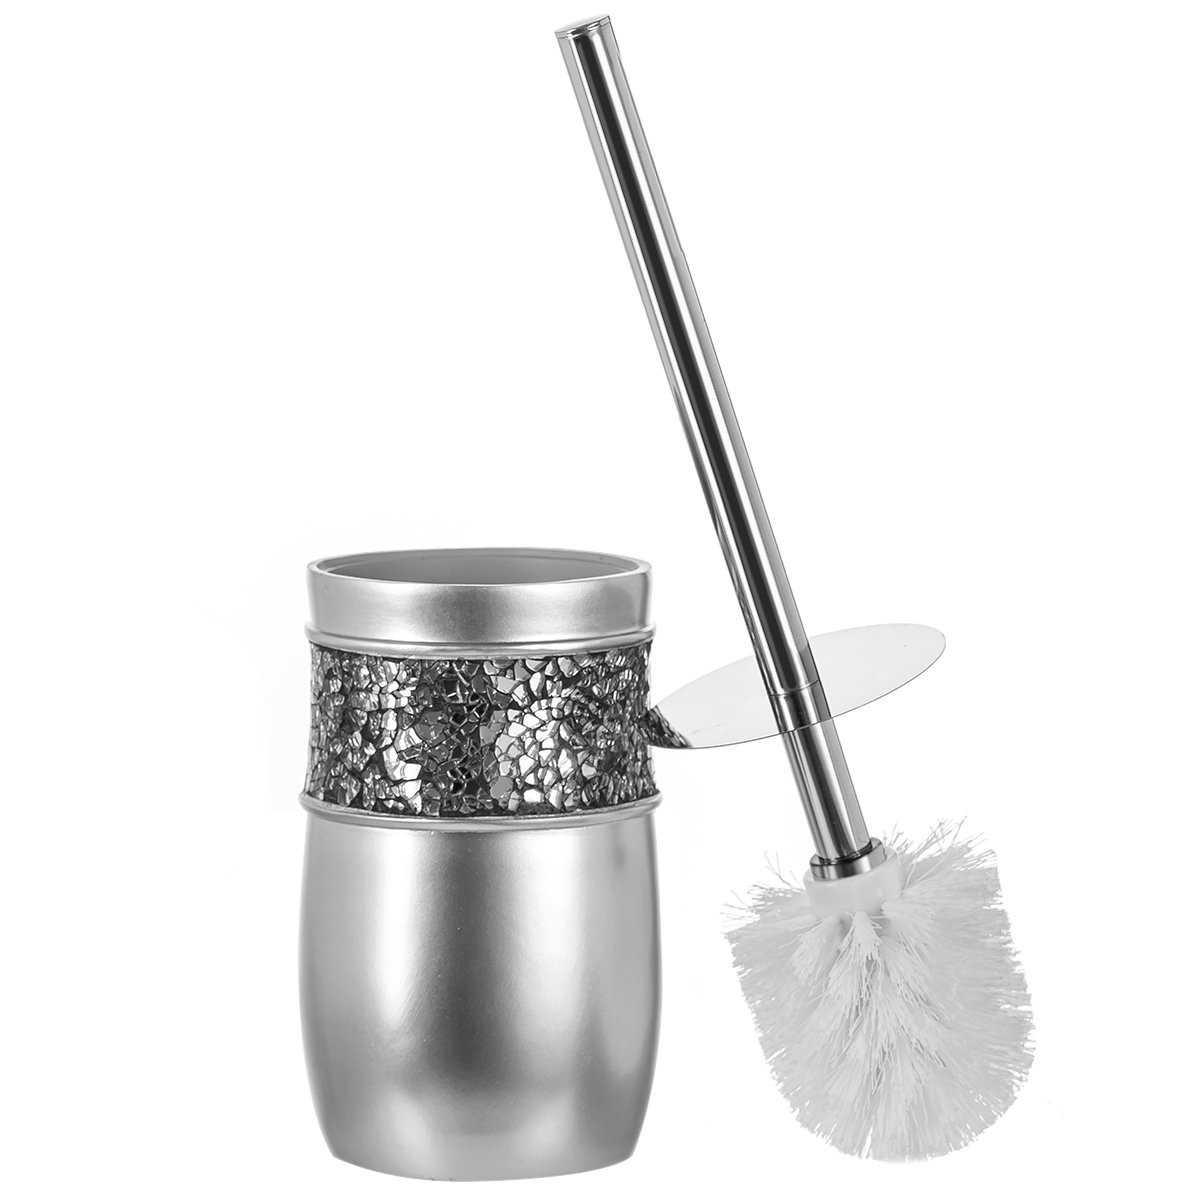 Creative Scents Bathroom Toilet Brush Set - Resin Toilet Bowl Cleaner Brush and Holder, Good Grip Decorative Design Compact Bowl Scrubber (Silver)